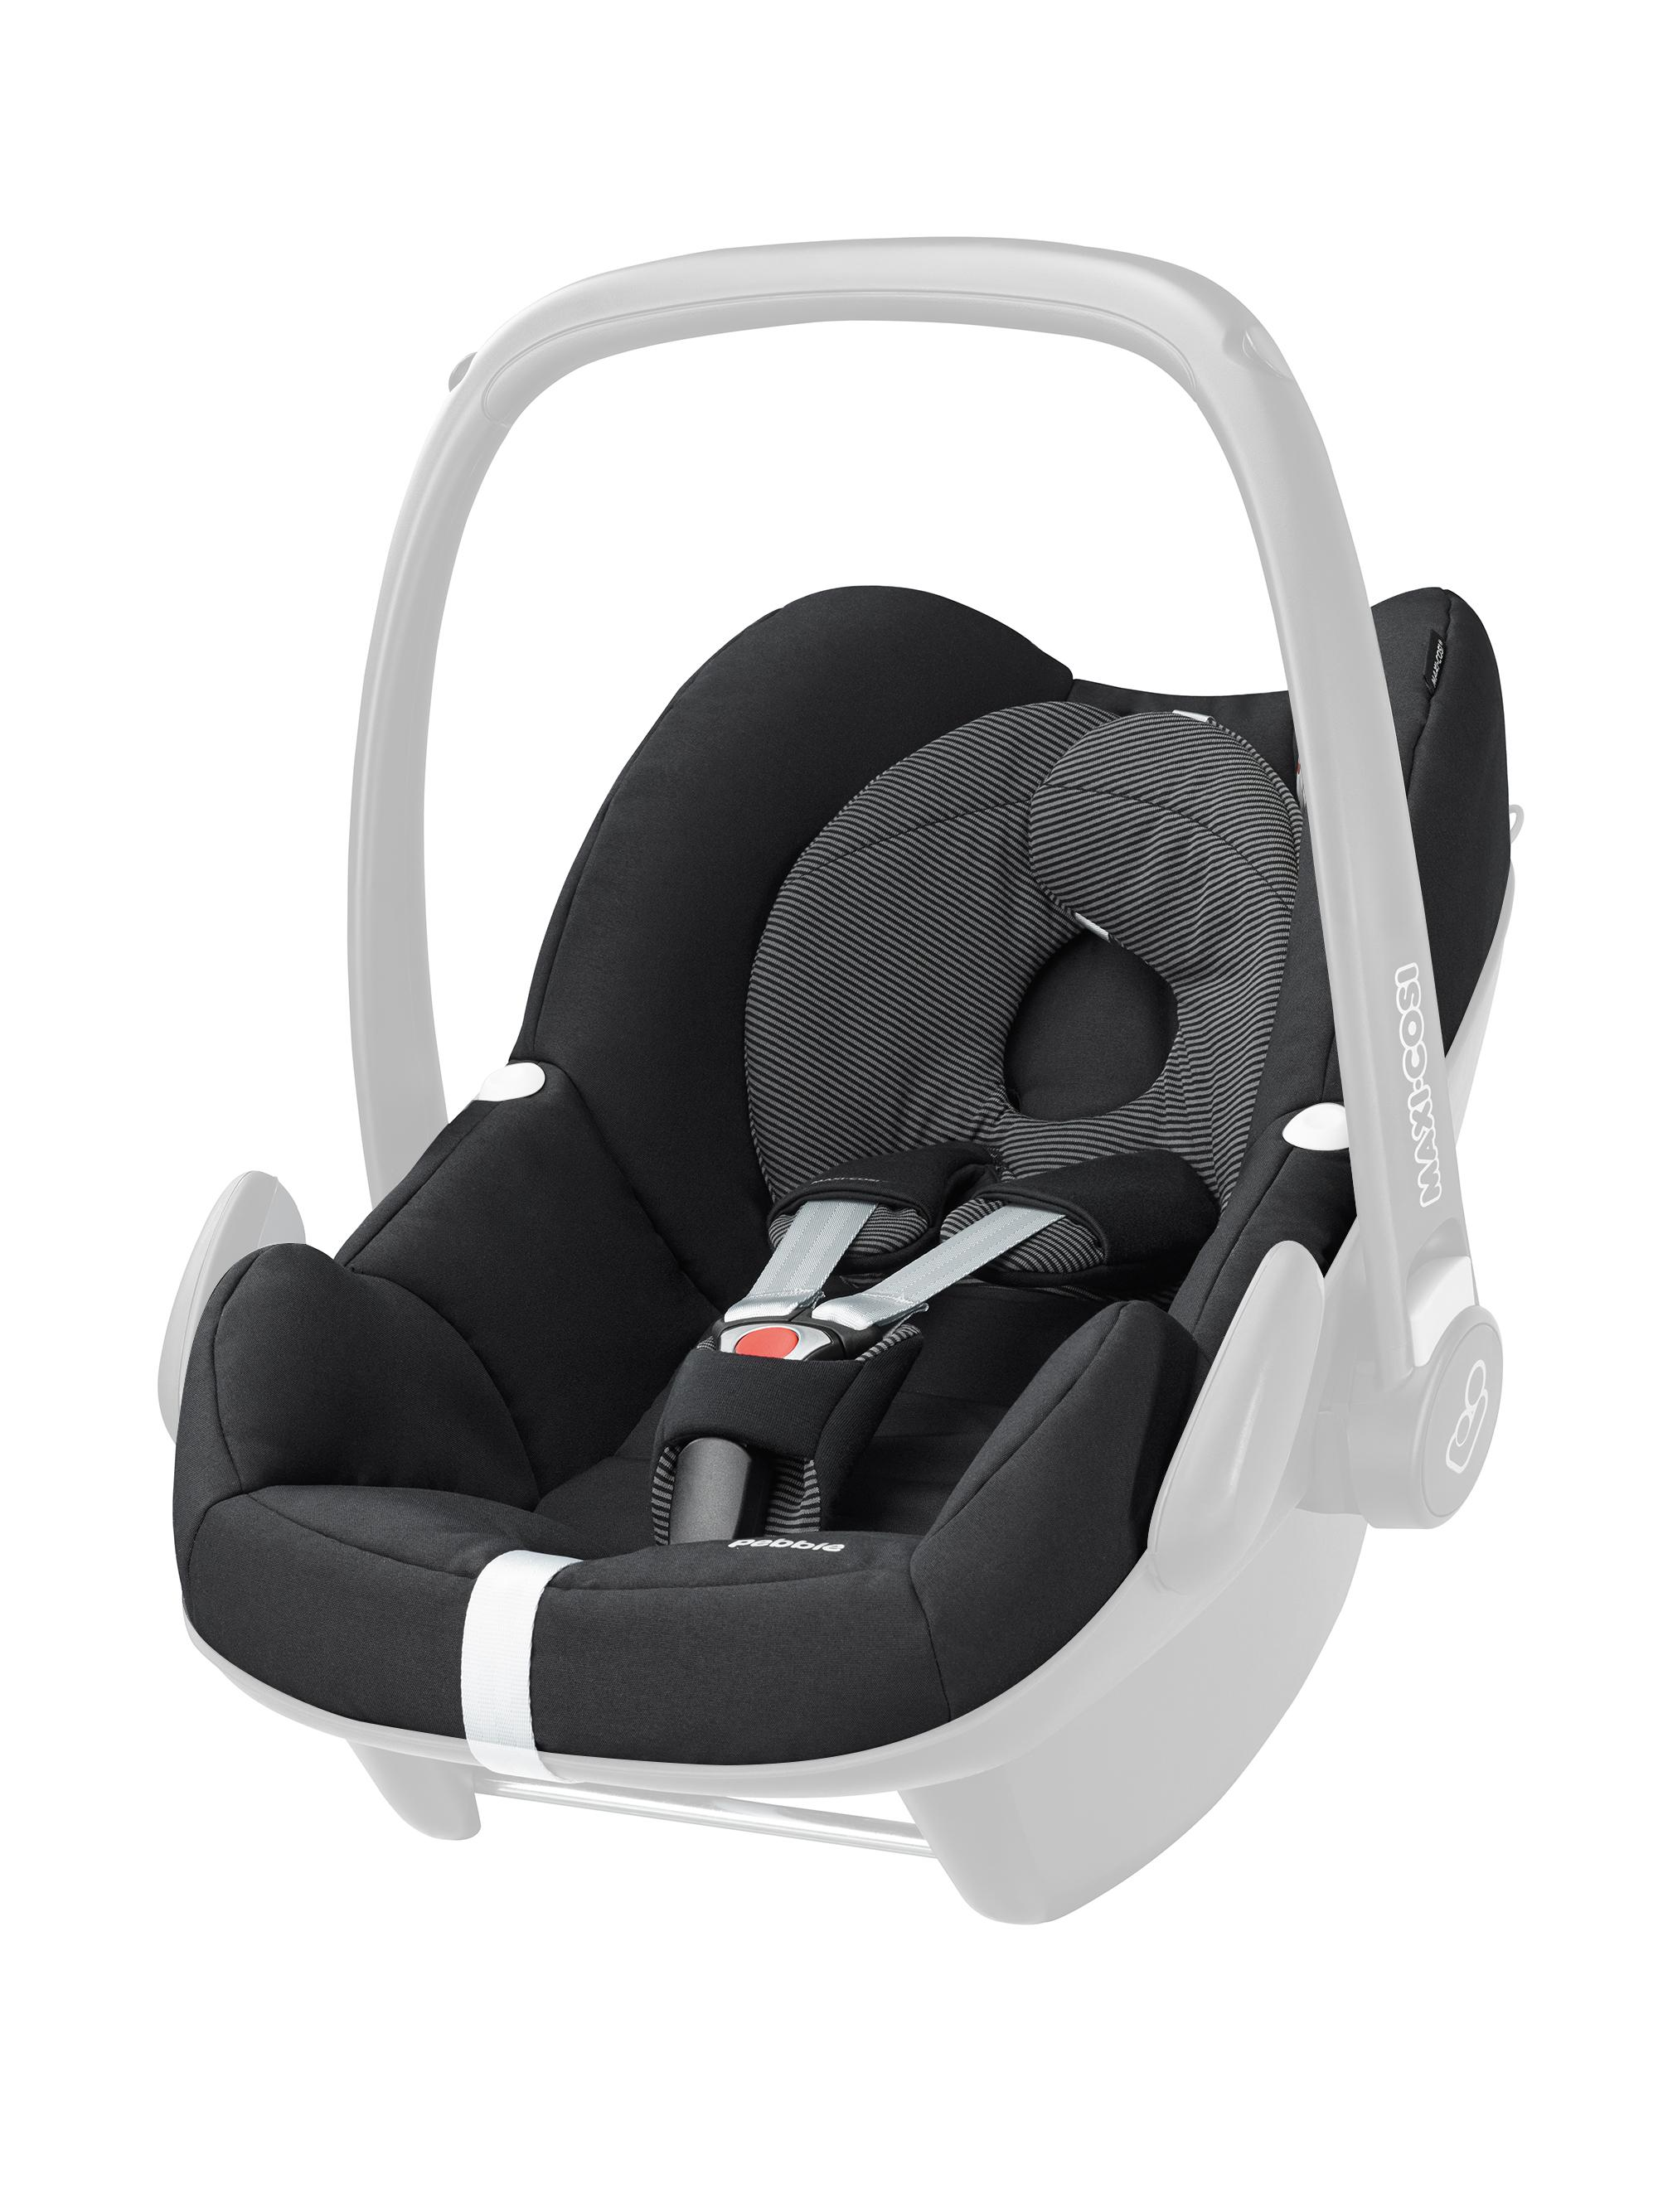 maxi cosi pebble car seat replacement cover black raven. Black Bedroom Furniture Sets. Home Design Ideas